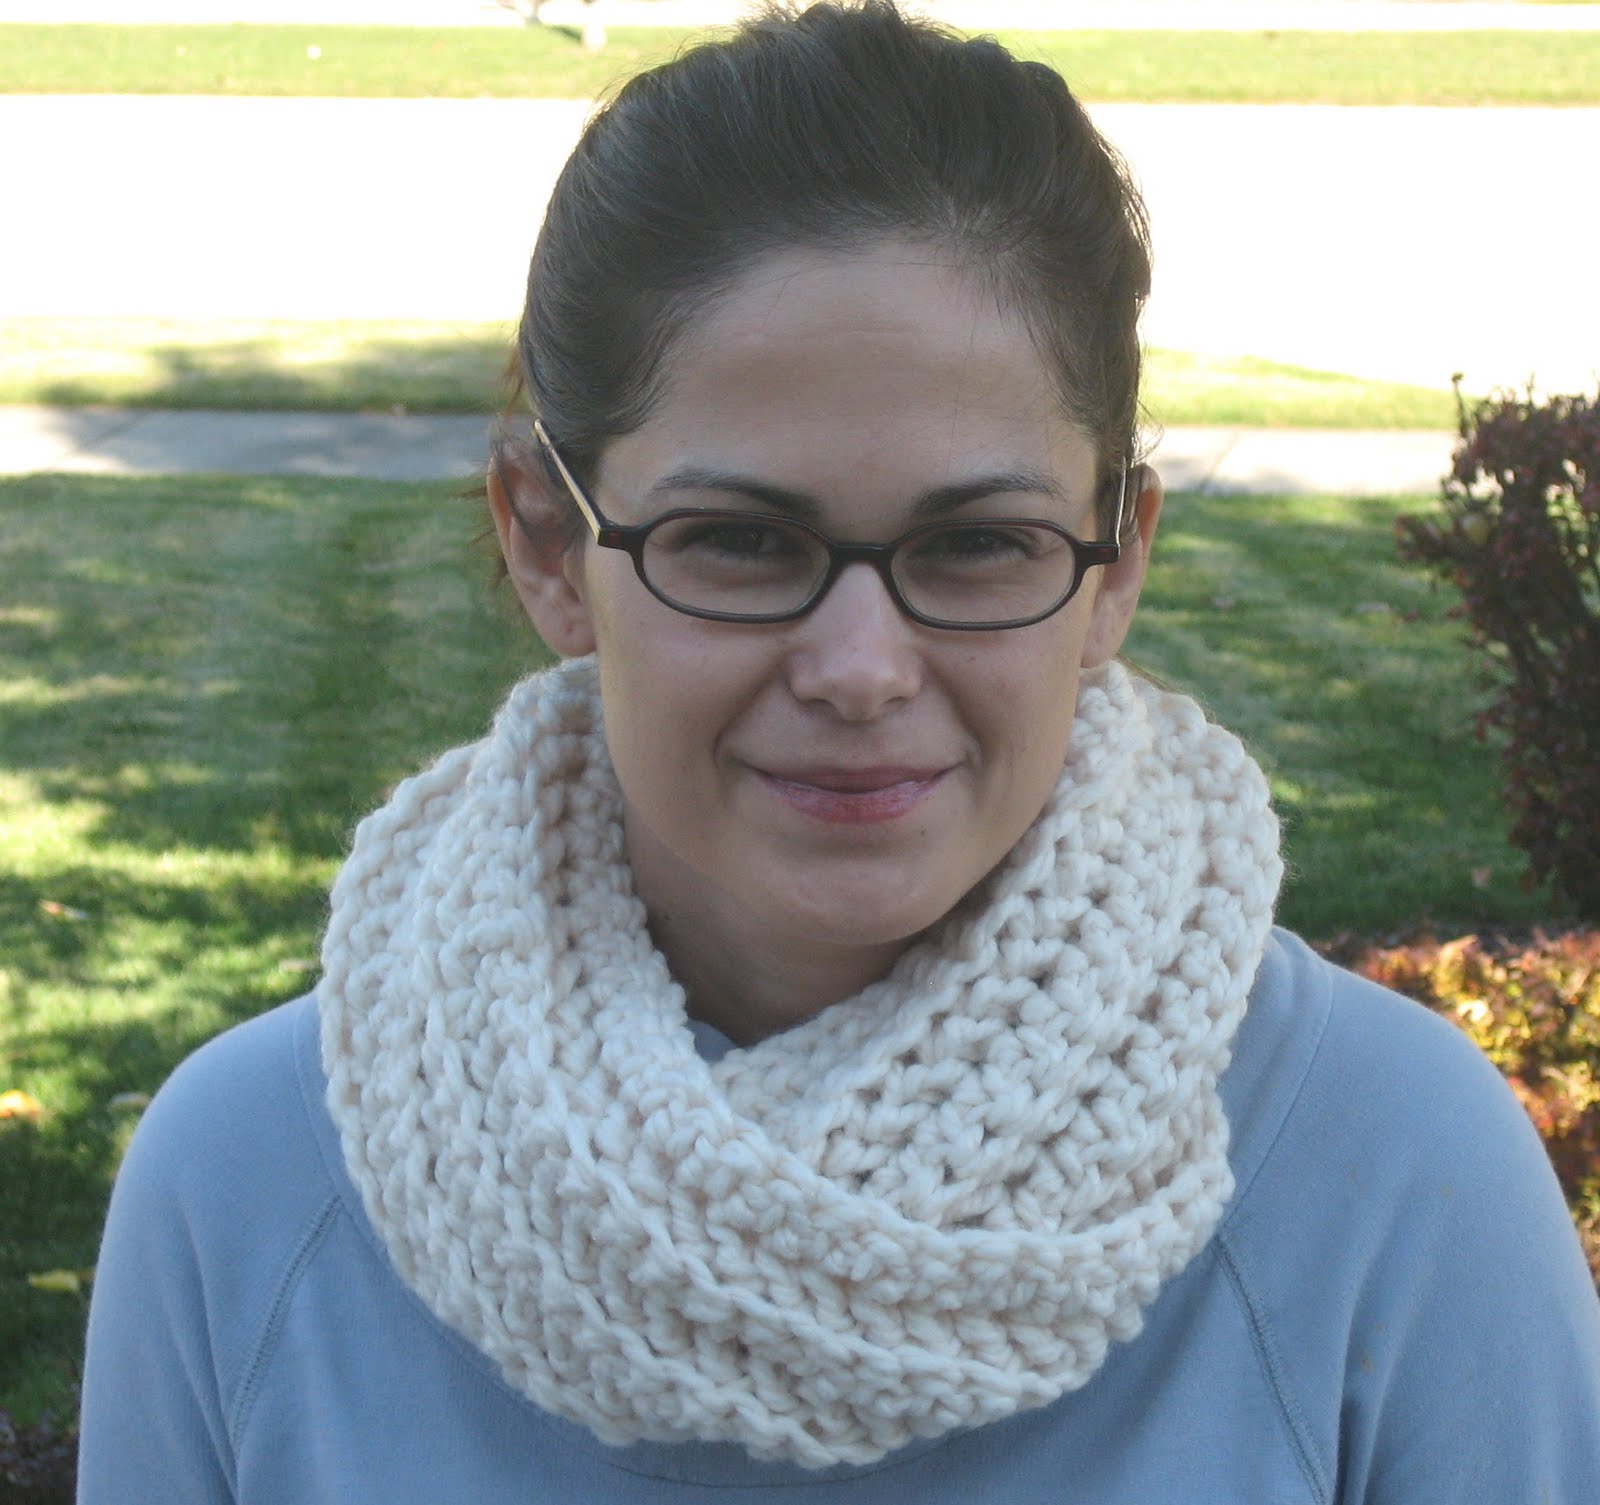 Free Crochet Pattern For A Cowl : CROCHET N PLAY DESIGNS: My Favorite Free Crochet Patterns ...